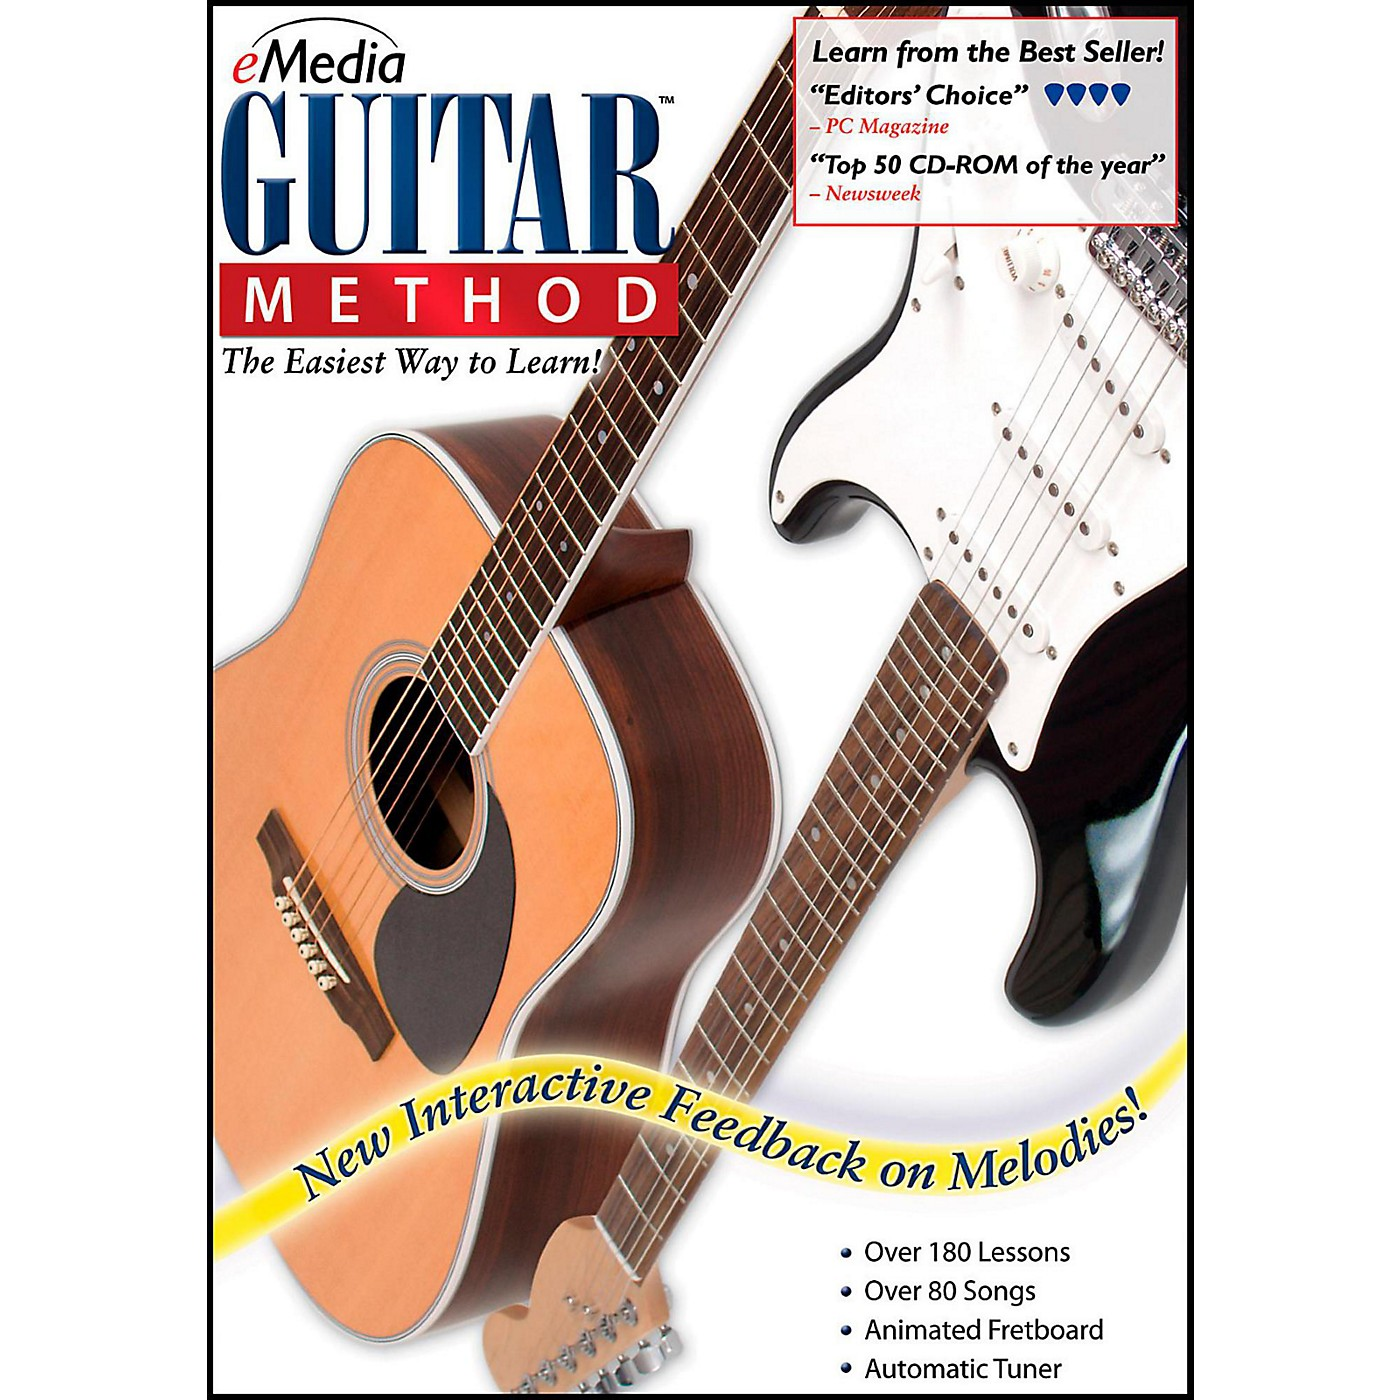 eMedia eMedia Guitar Method - Digital Download thumbnail